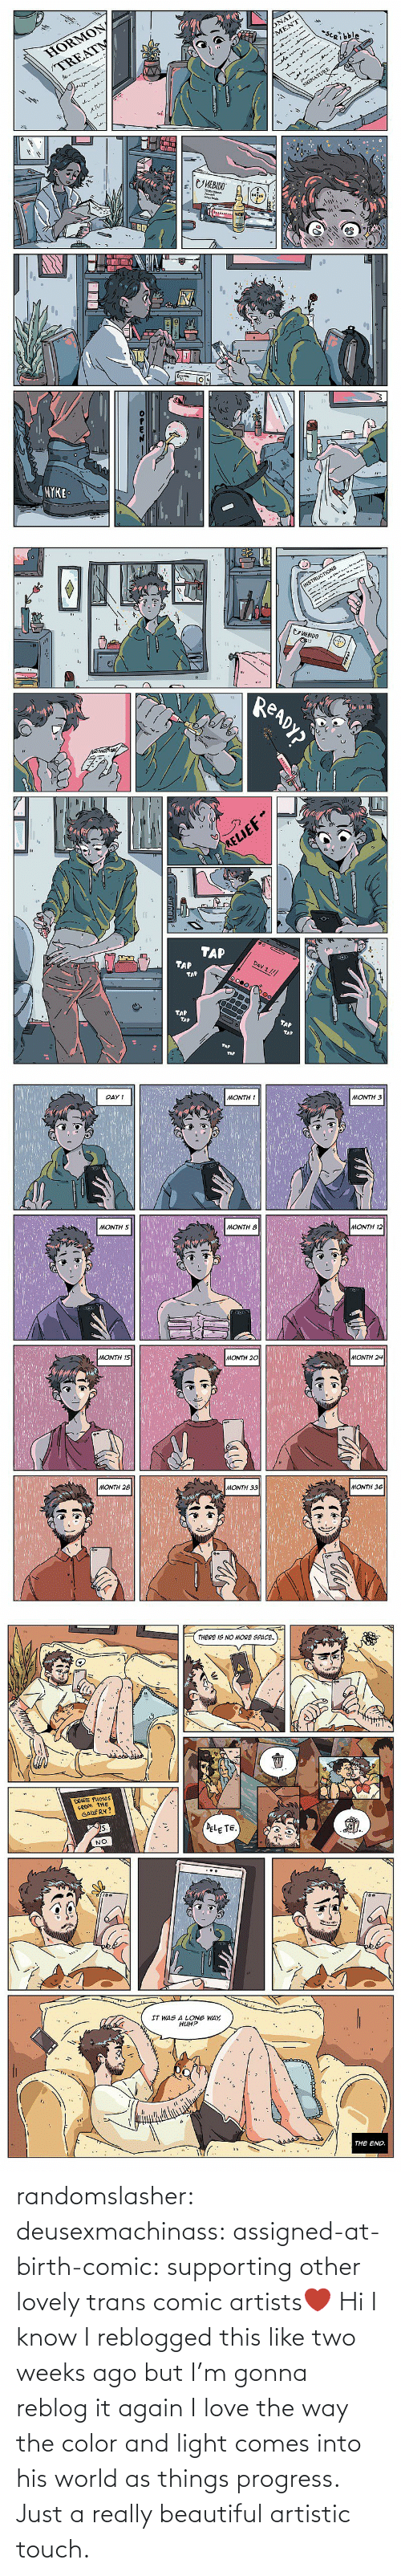 Hi: randomslasher: deusexmachinass:  assigned-at-birth-comic: supporting other lovely trans comic artists❤  Hi I know I reblogged this like two weeks ago but I'm gonna reblog it again  I love the way the color and light comes into his world as things progress. Just a really beautiful artistic touch.